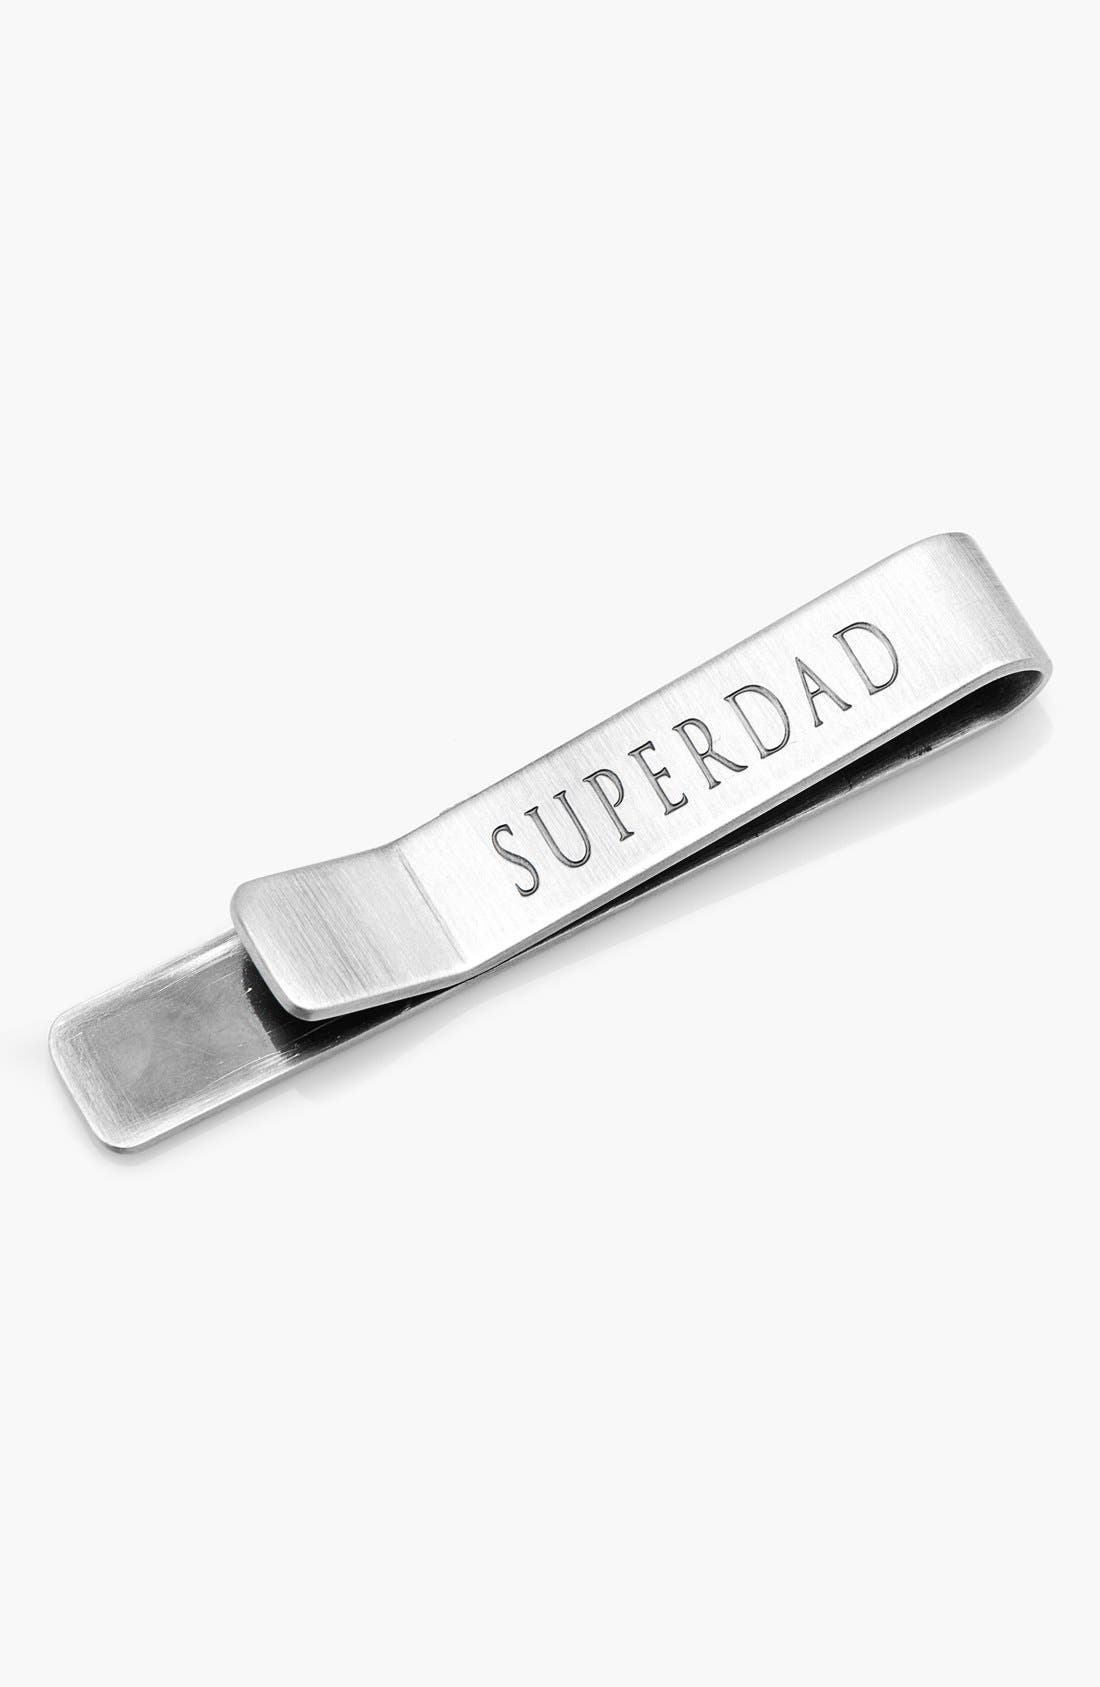 Ox and Bull Trading Co. 'Superdad' Tie Bar